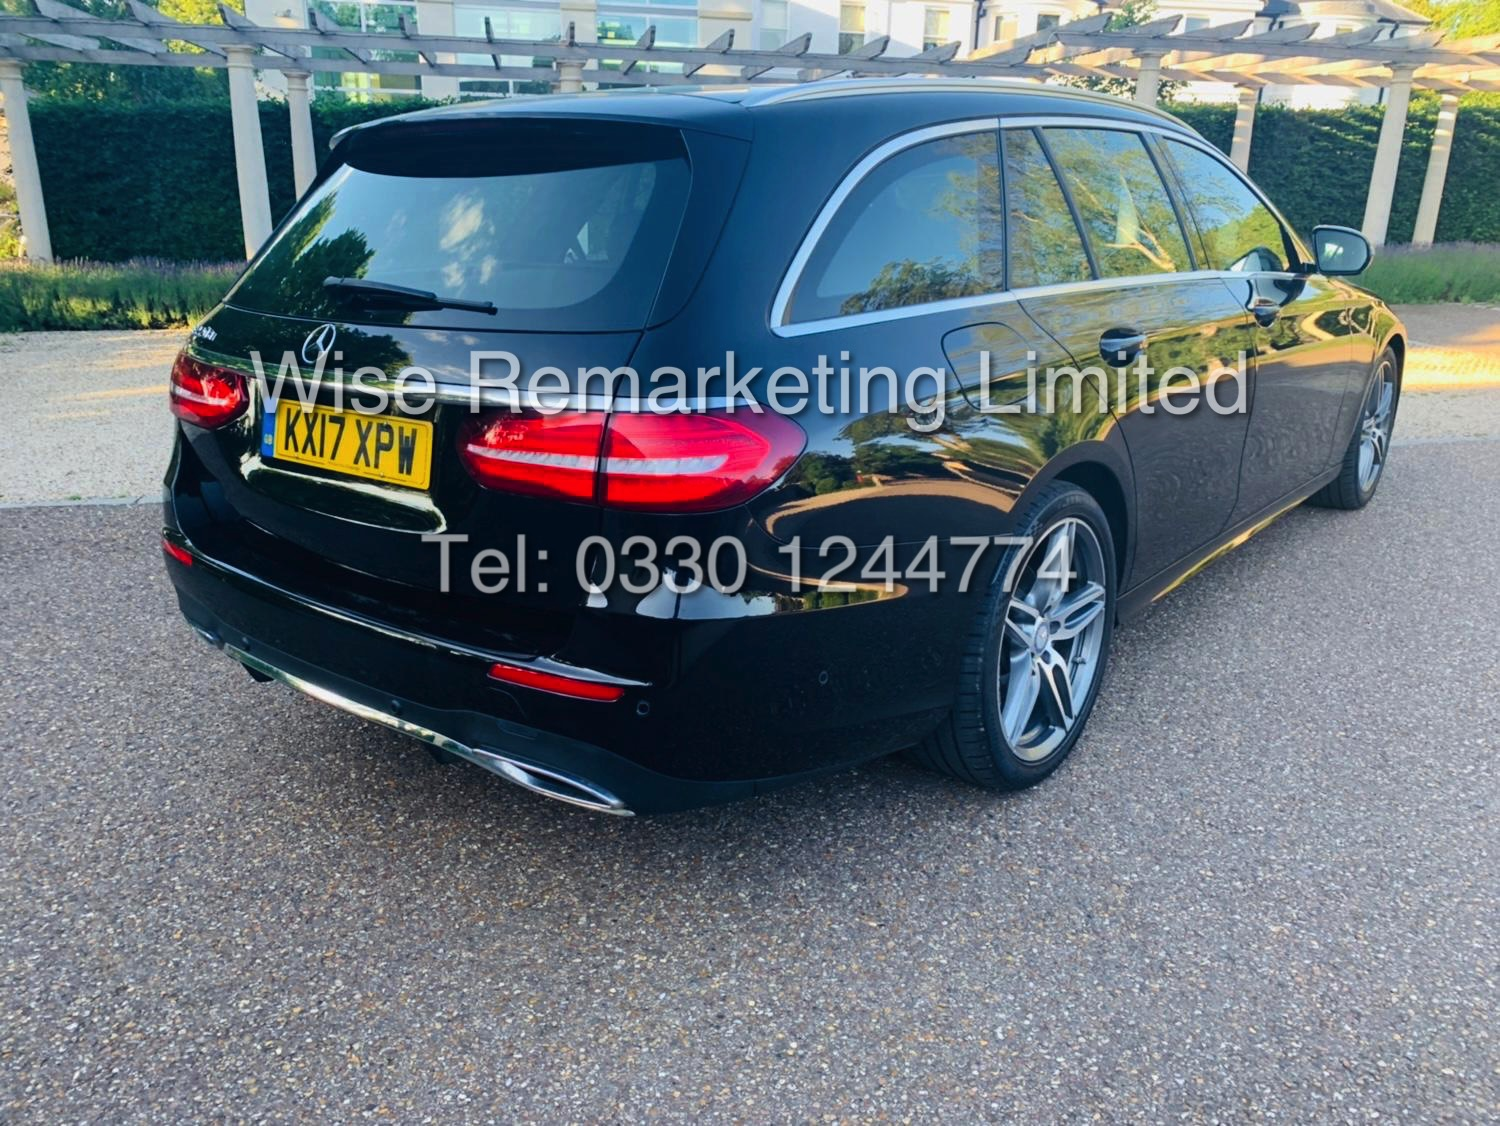 MERCEDES E CLASS ESTATE E220D AMG LINE 2017 / 9G -TRONIC / *LOW MILES* / 1 OWNER - Image 12 of 42